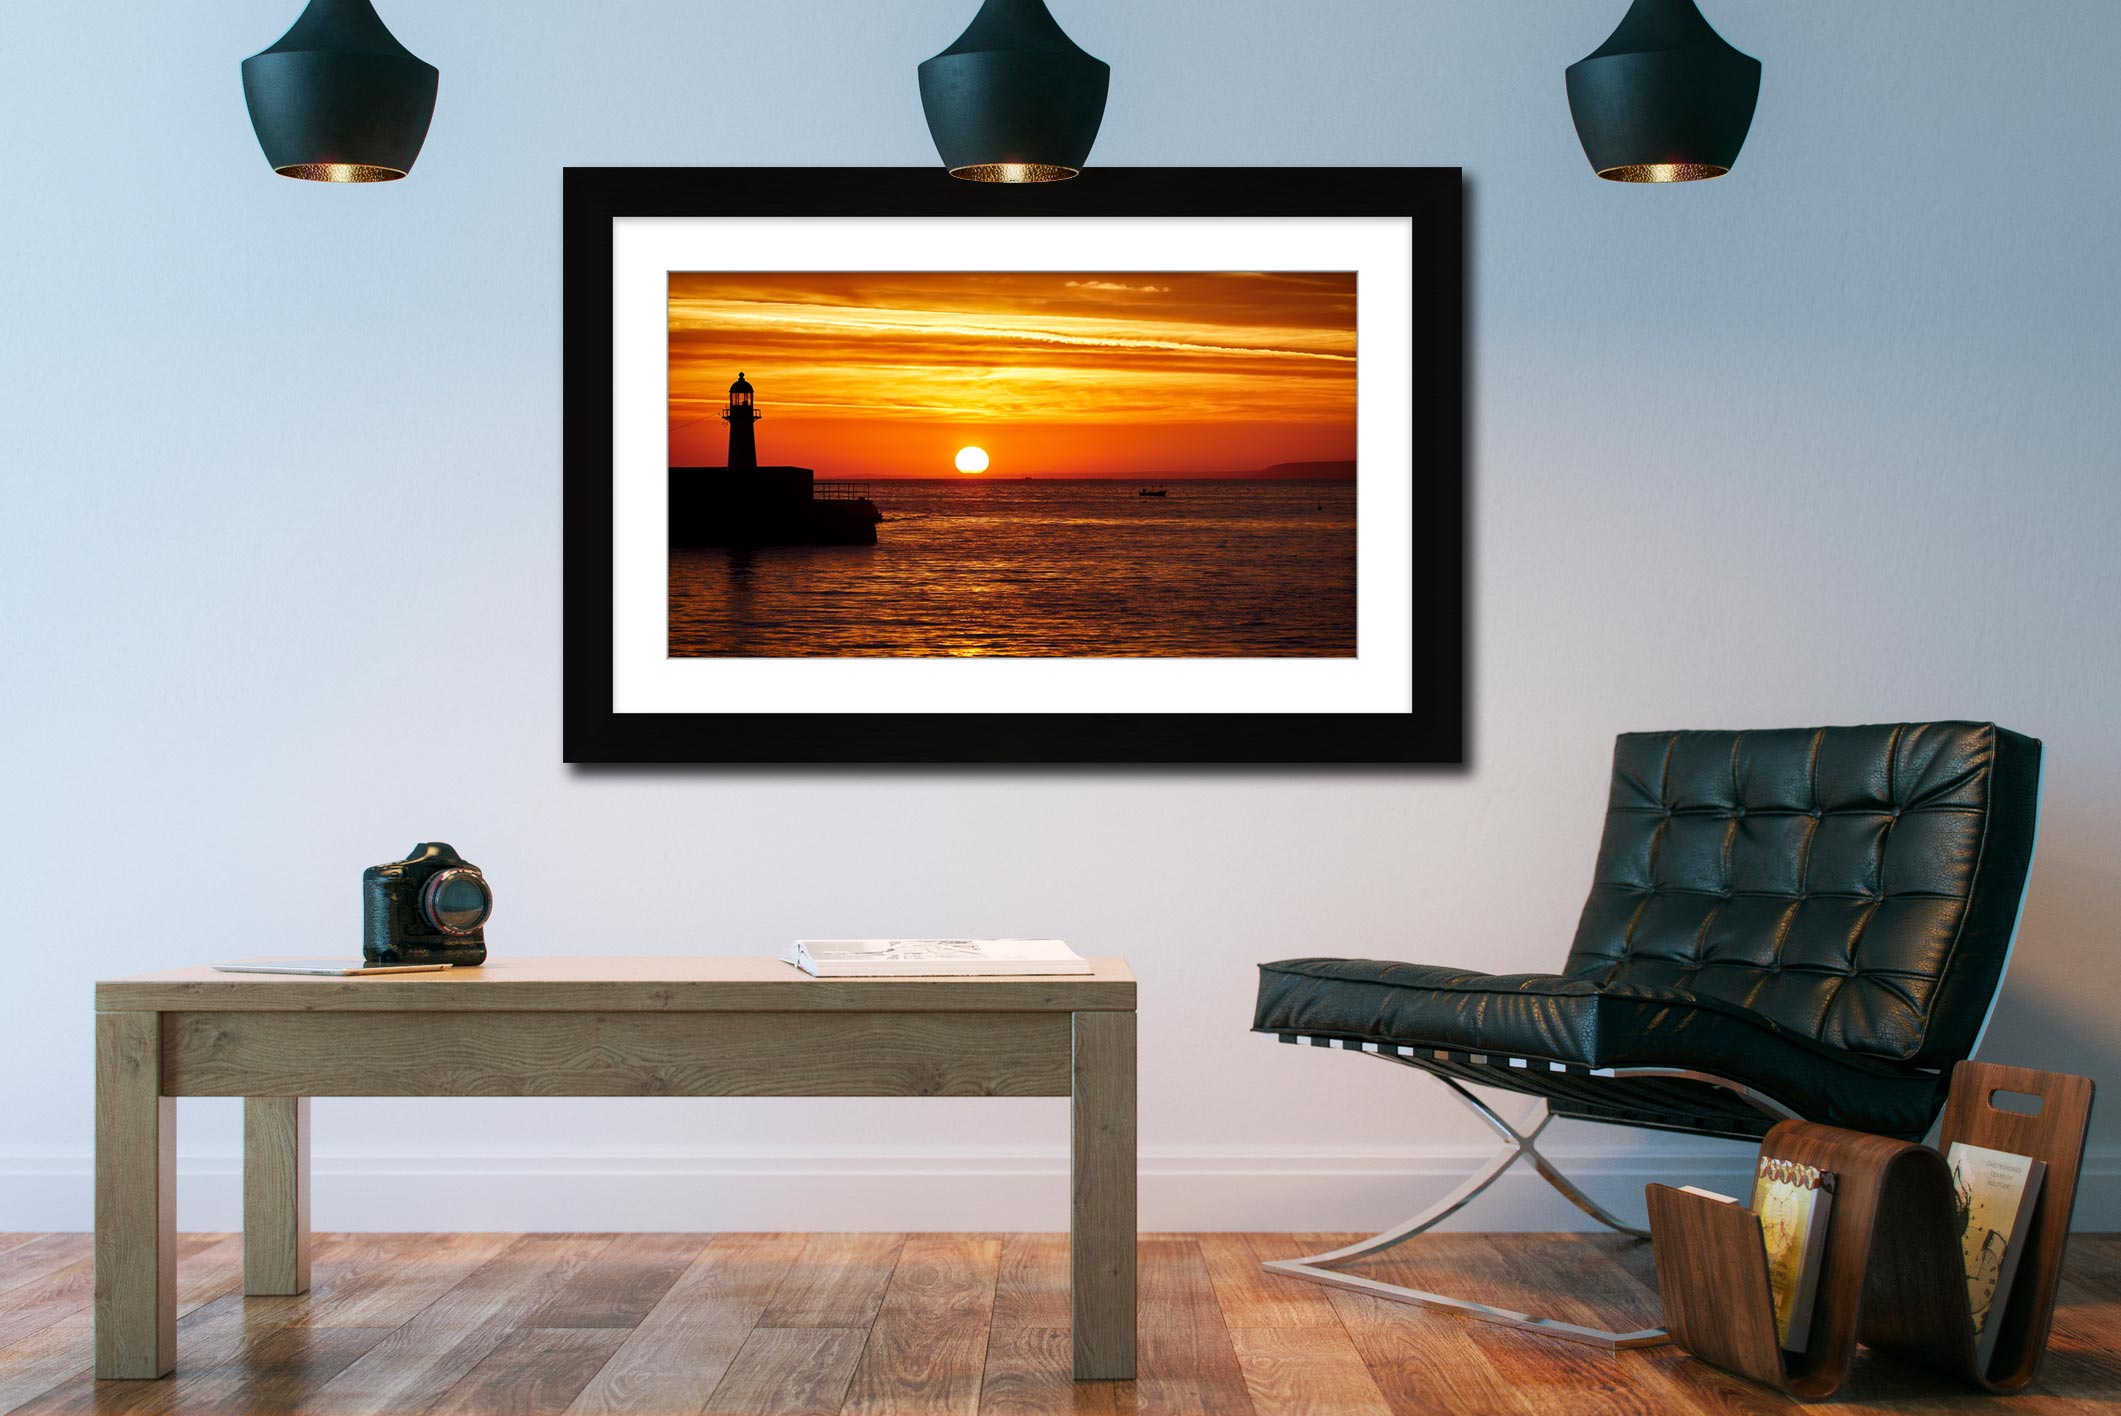 St Ives Harbour Sunrise - Framed Print with Mount on Wall